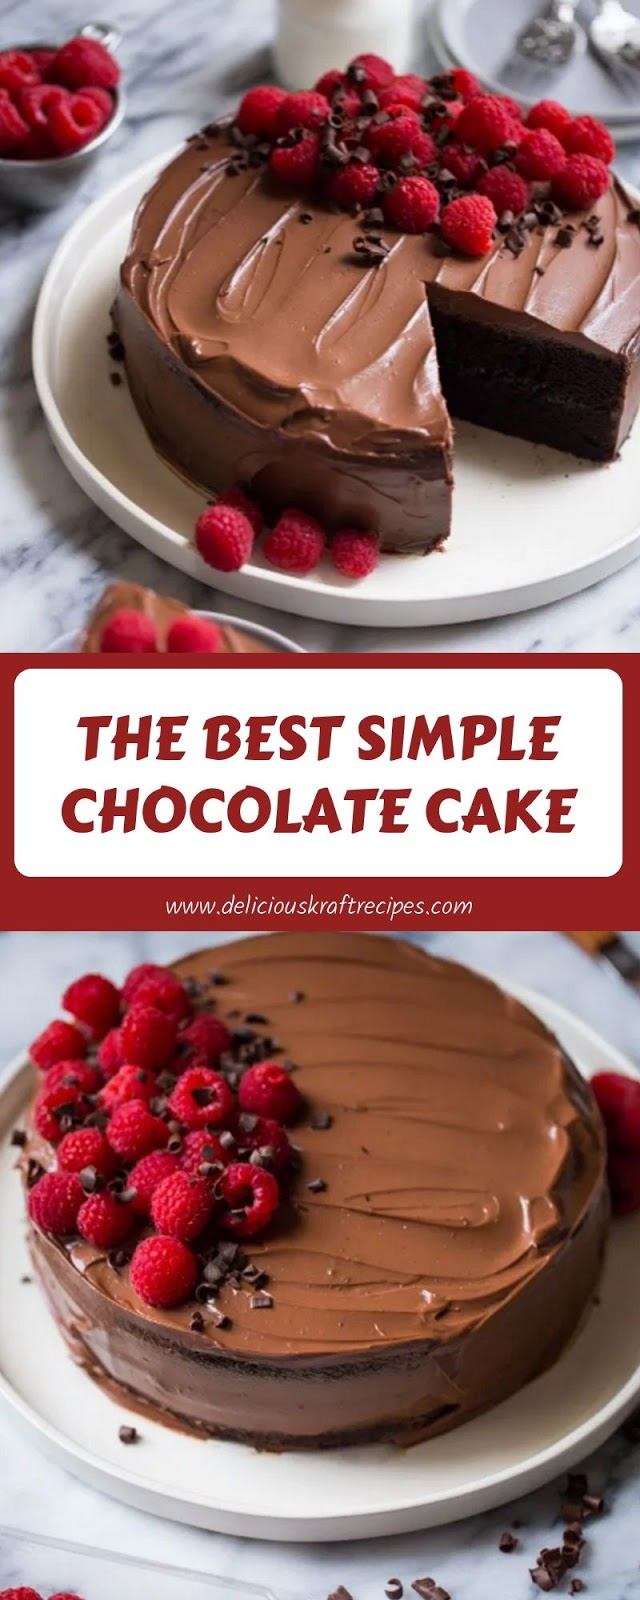 THE BEST SIMPLE CHOCOLATE CAKE